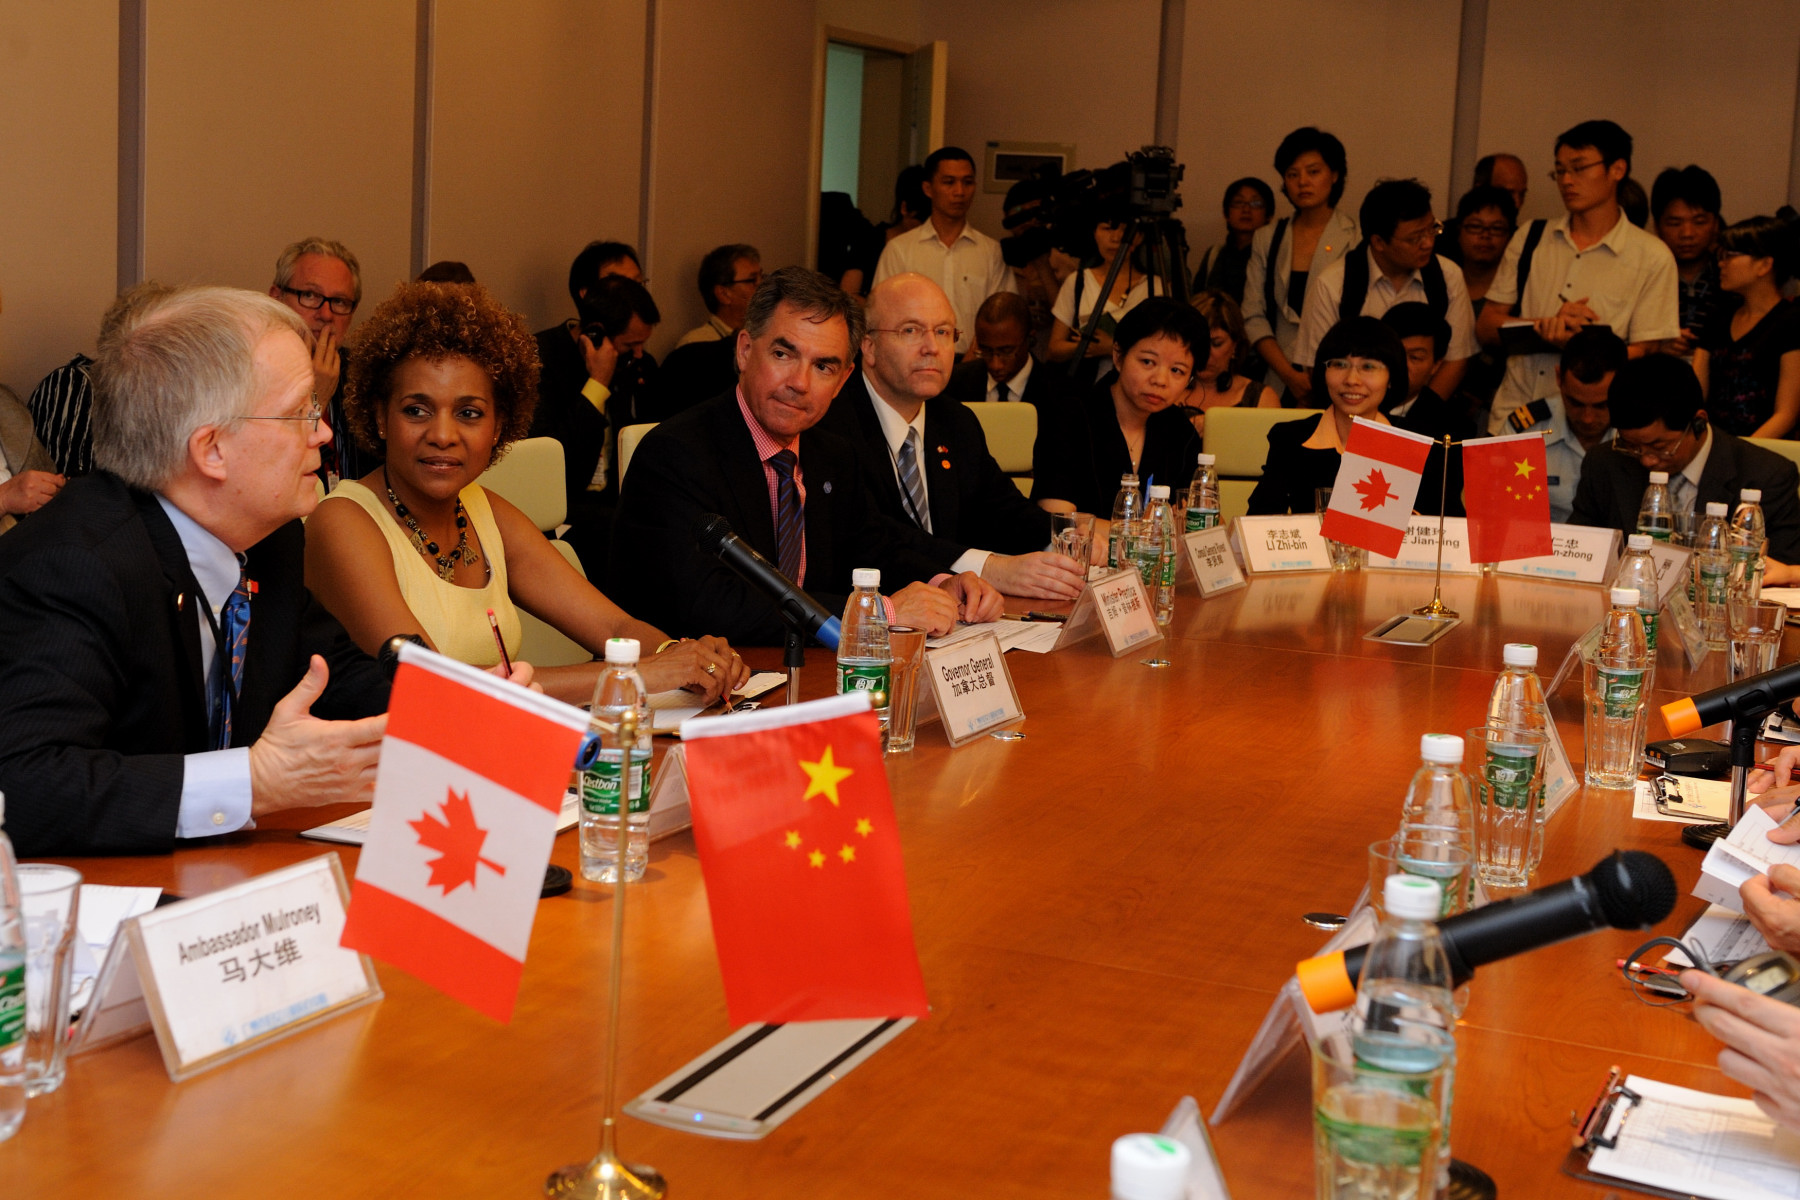 The Canadian delegates participated in a discussion with doctors, nurses and administrative staff of the Medical Center.